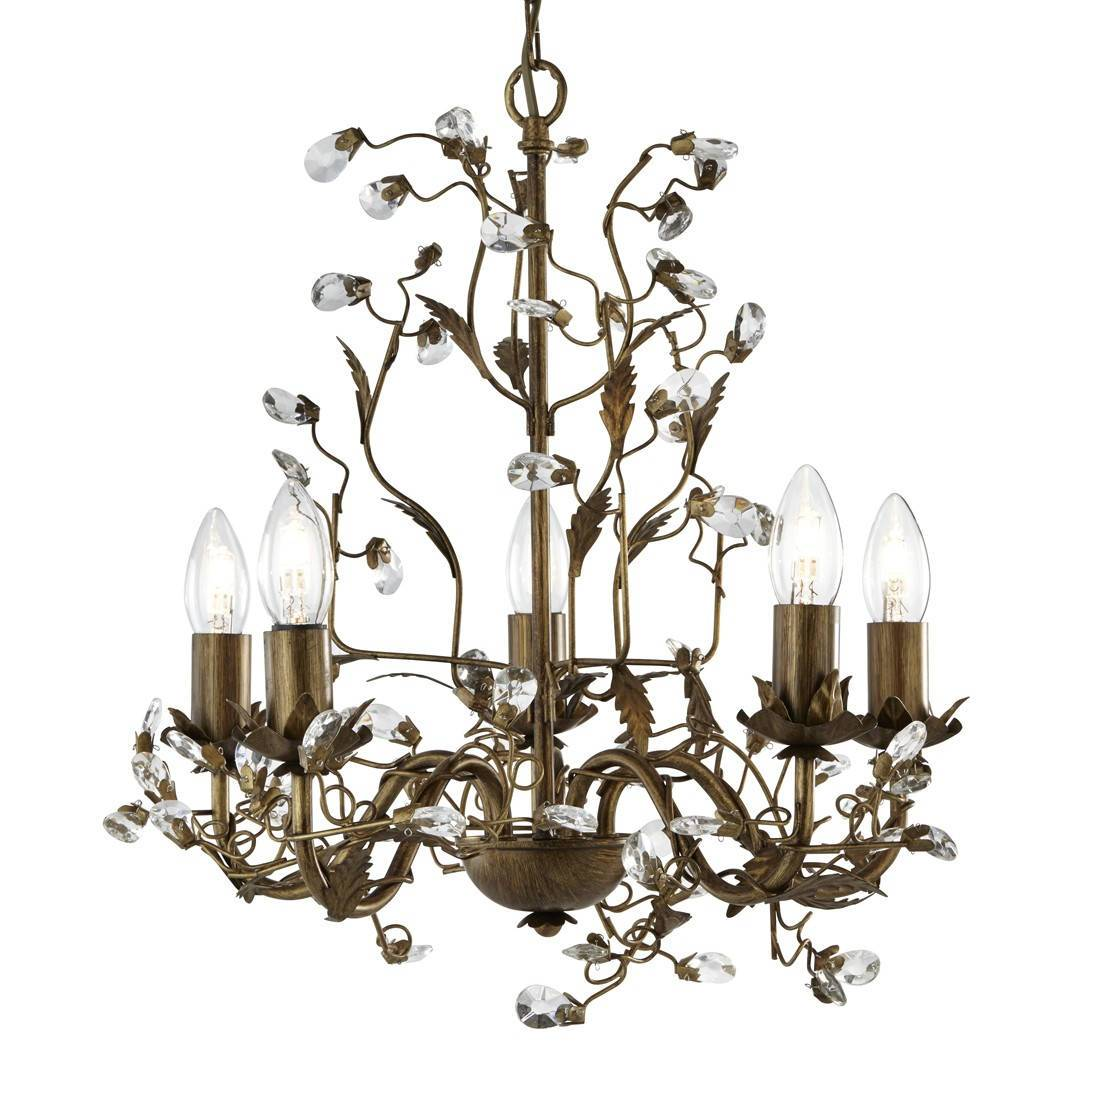 5 Light Multi Arm Ceiling Pendant Floral Leaves Brown Gold With Crystals, E14